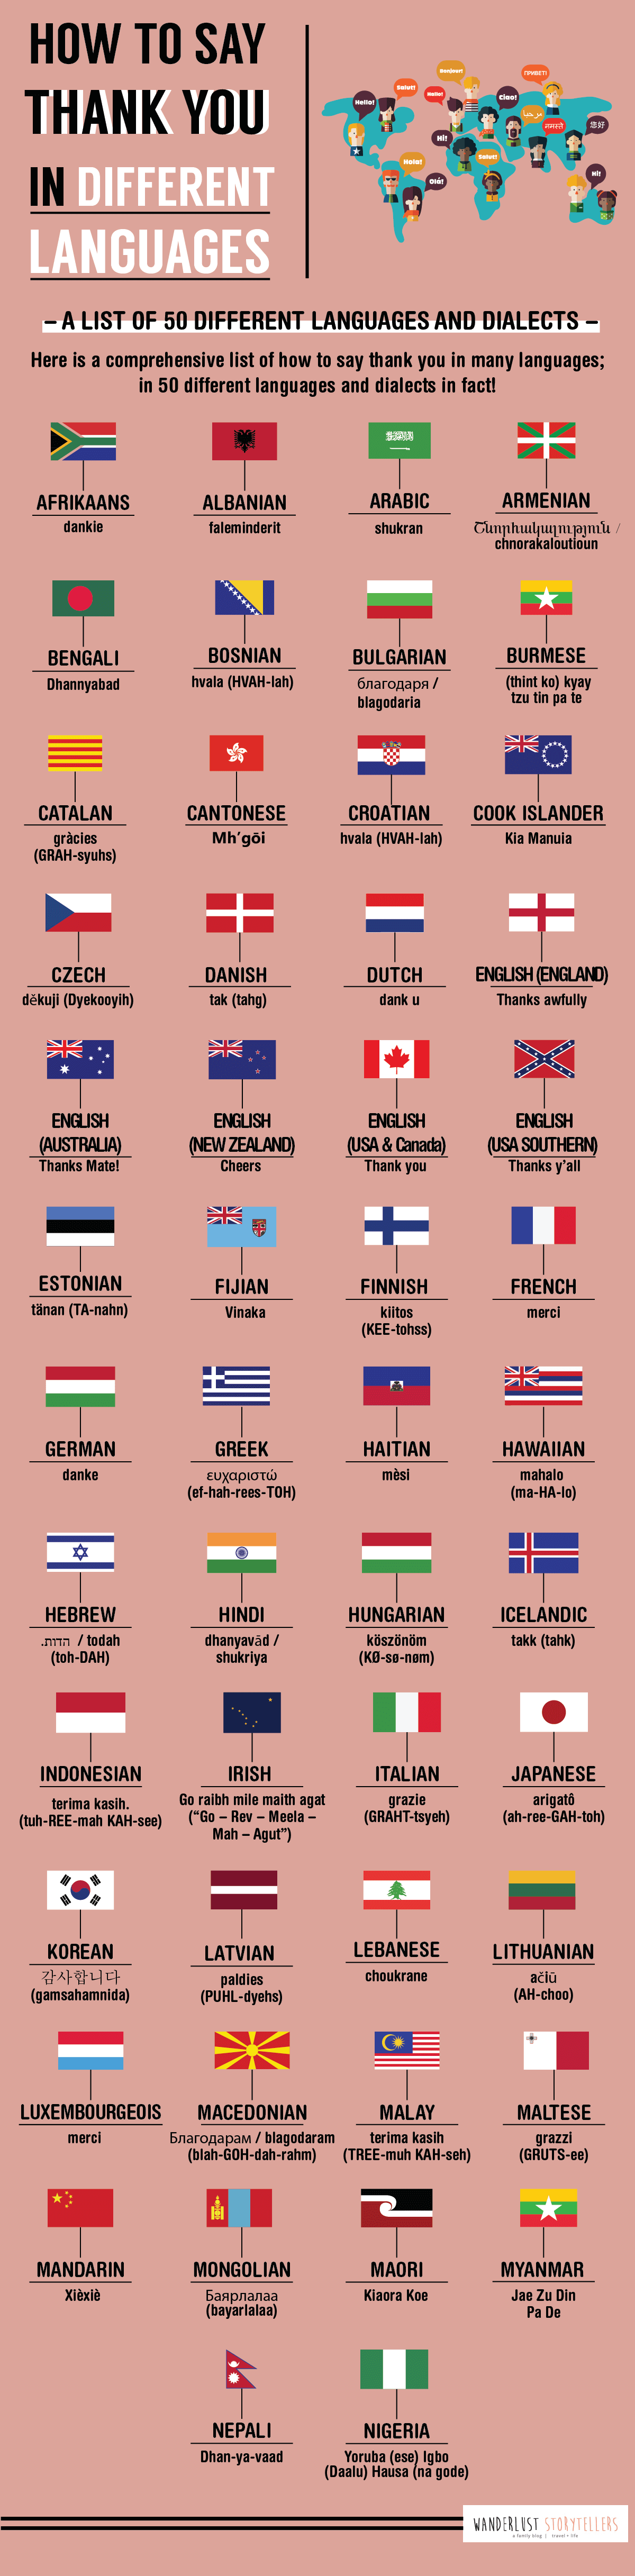 How To Say Thank You In 65 Different Languages